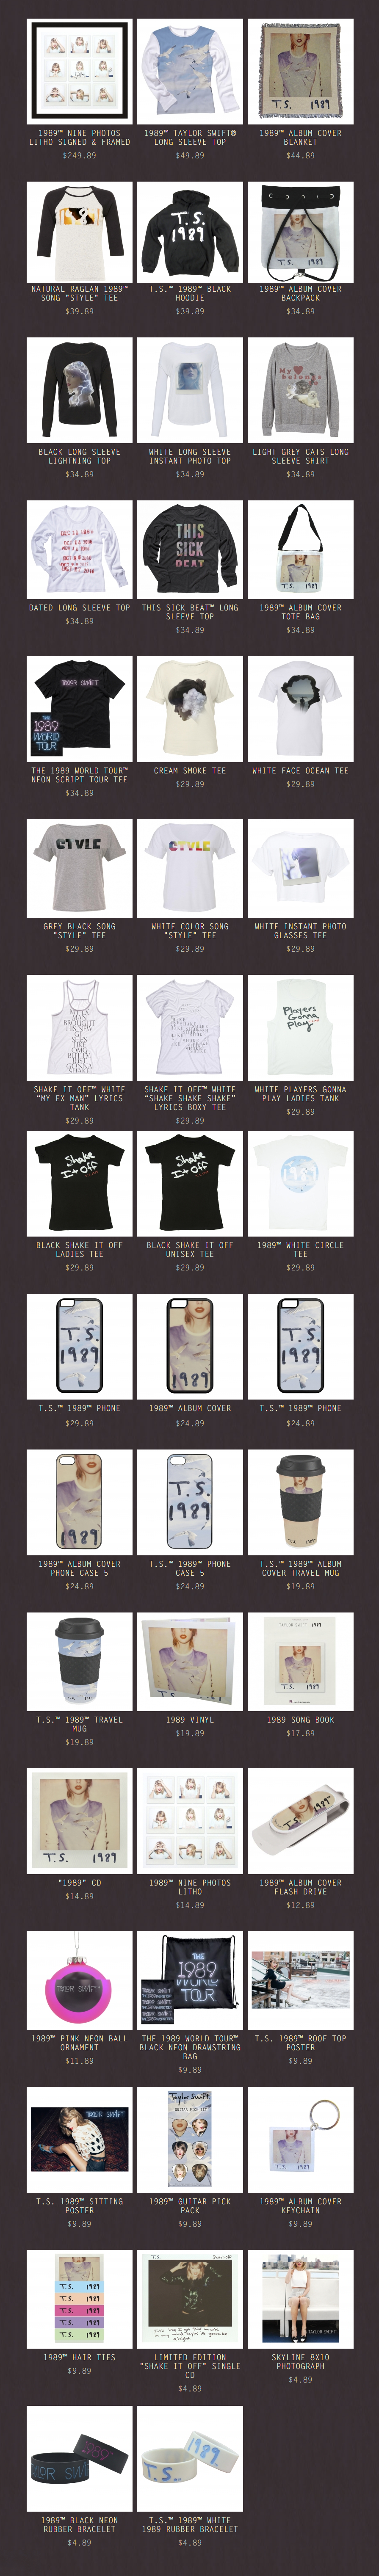 1989 Merch  Taylor Swift Official Online Store